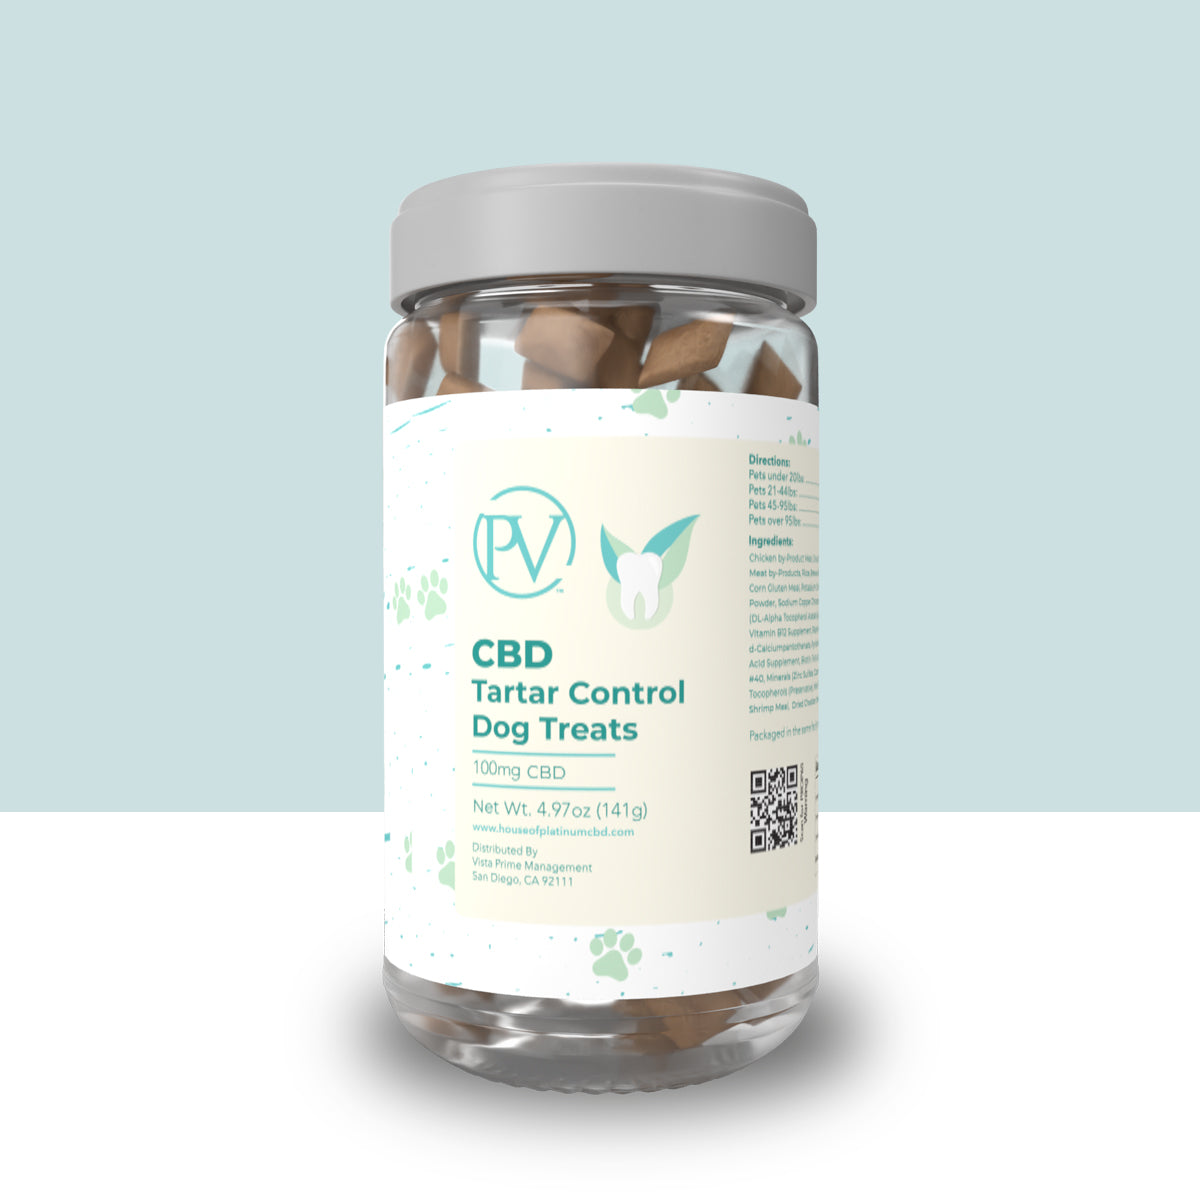 TarTar Control Dog Treats